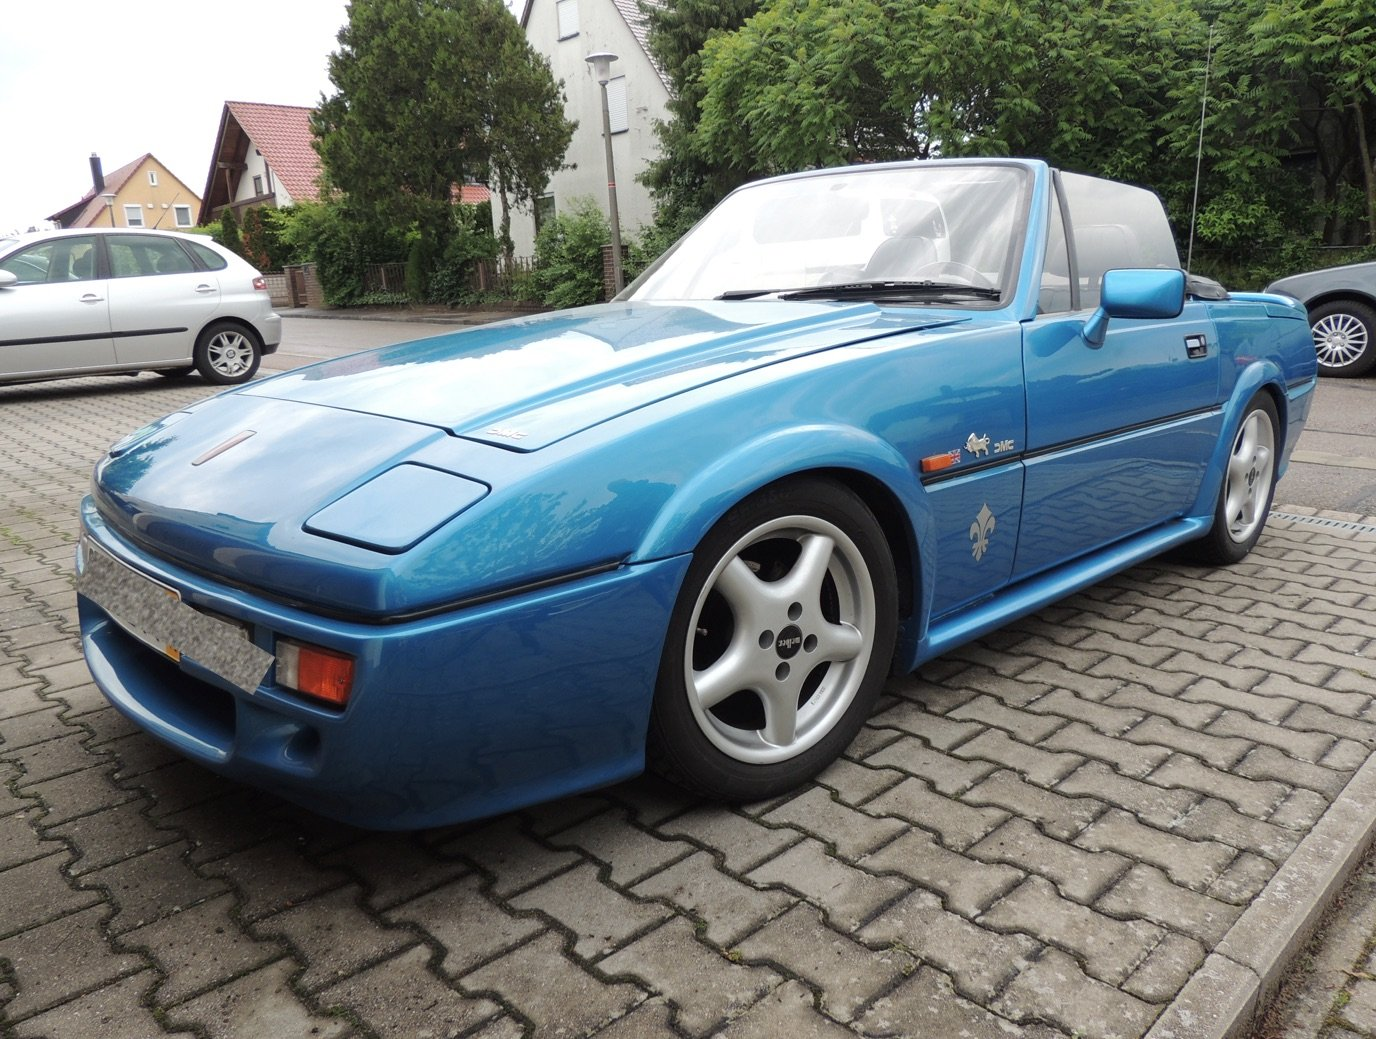 1998 Reliant Scimitar Sabre LHD For Sale (picture 1 of 6)